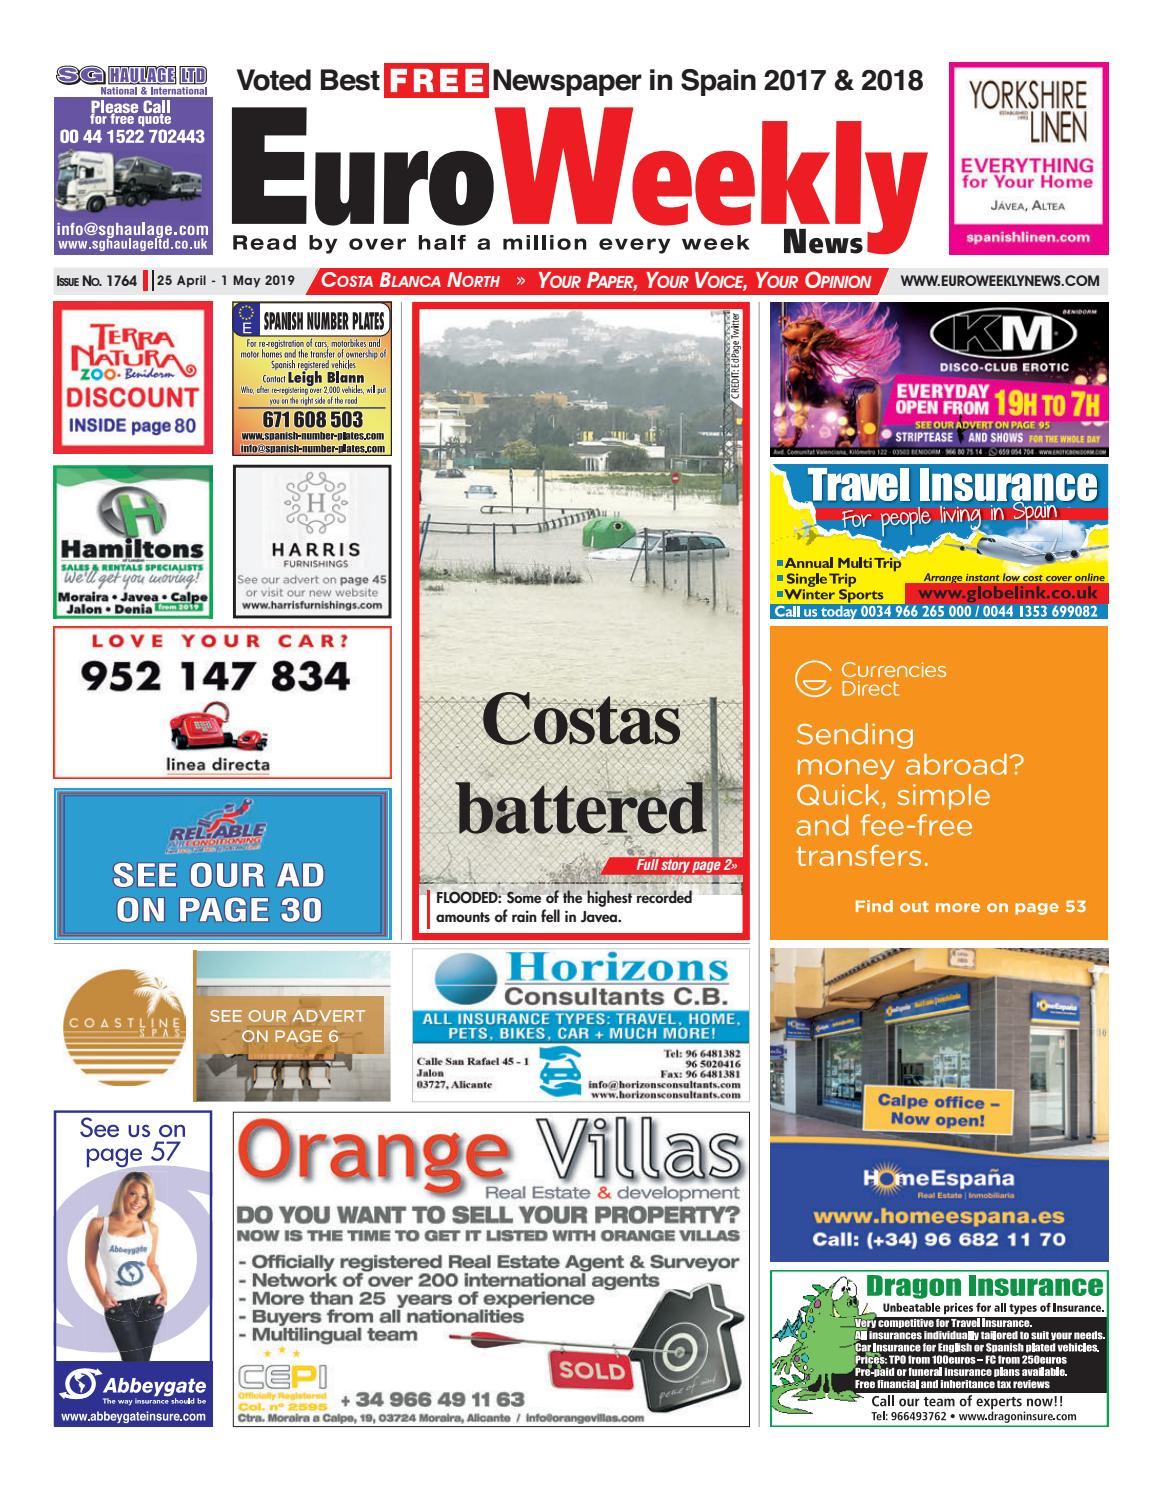 df3d8ce50e Euro Weekly News - Costa Blanca North 25 April - 1 May 2019 Issue 1764 by  Euro Weekly News Media S.A. - issuu